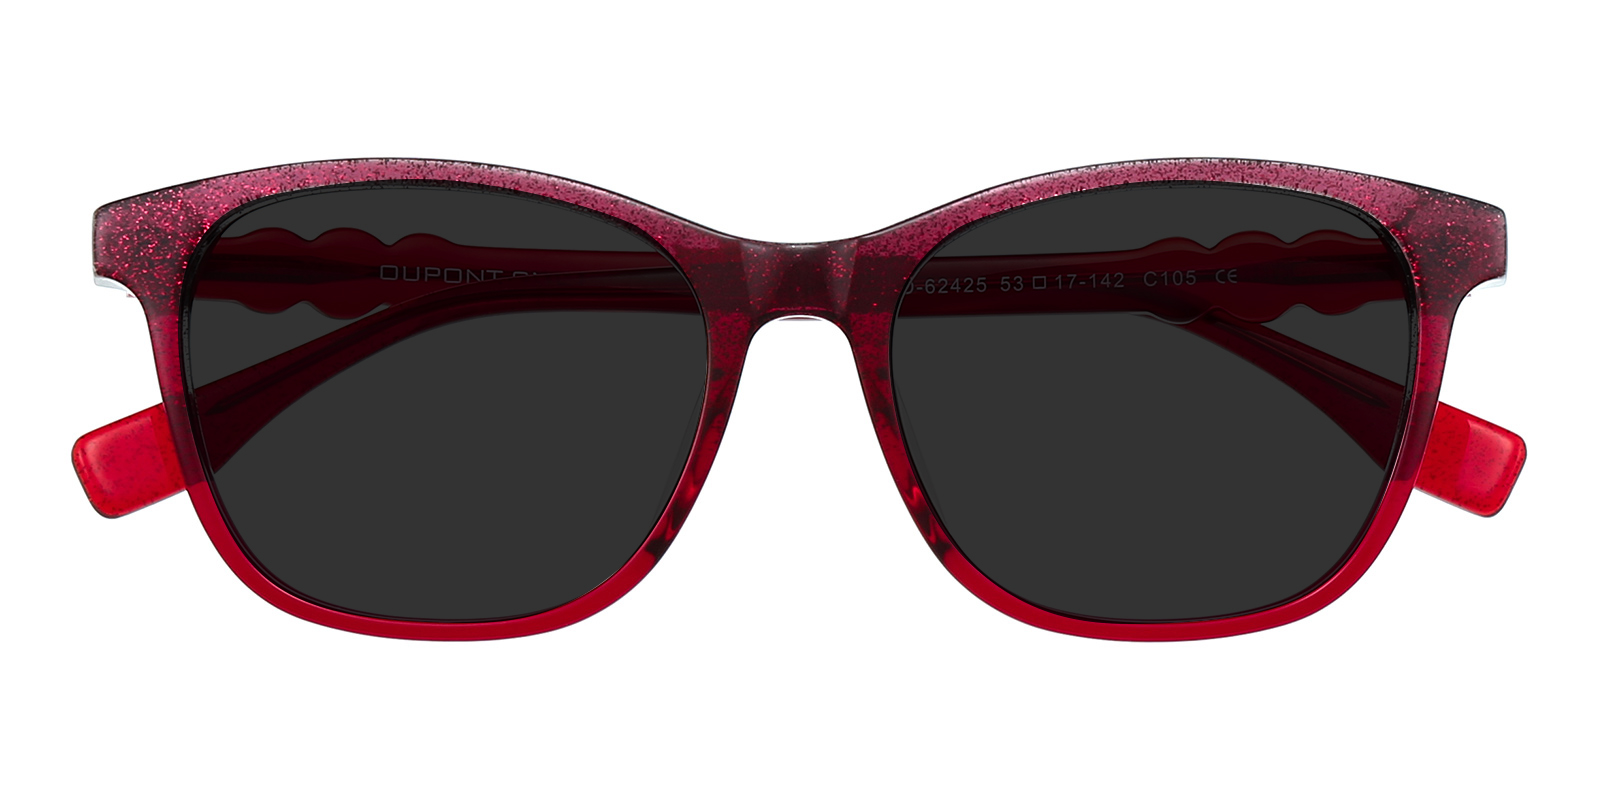 Women's Classic Wayframe Sunglasses, Full Frame Plastic Red - SUP0732